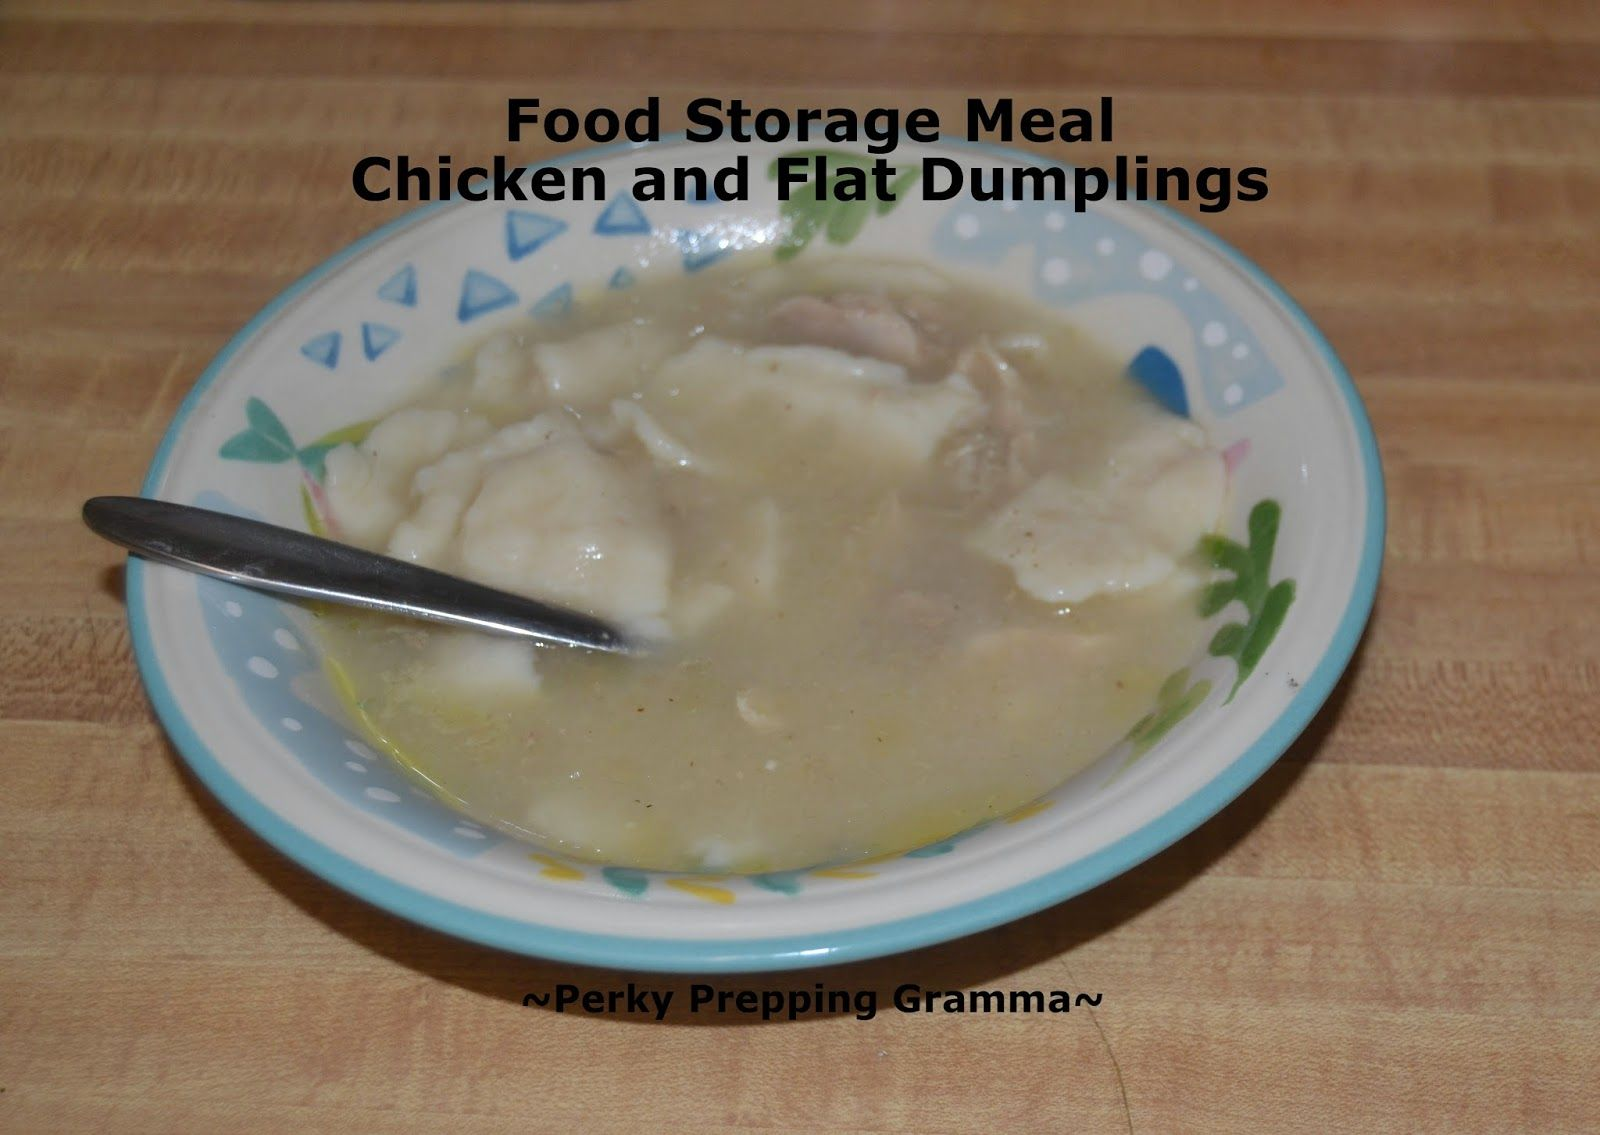 Perky prepping gramma chicken dumplings food storage meal perky prepping gramma chicken dumplings food storage meal forumfinder Gallery